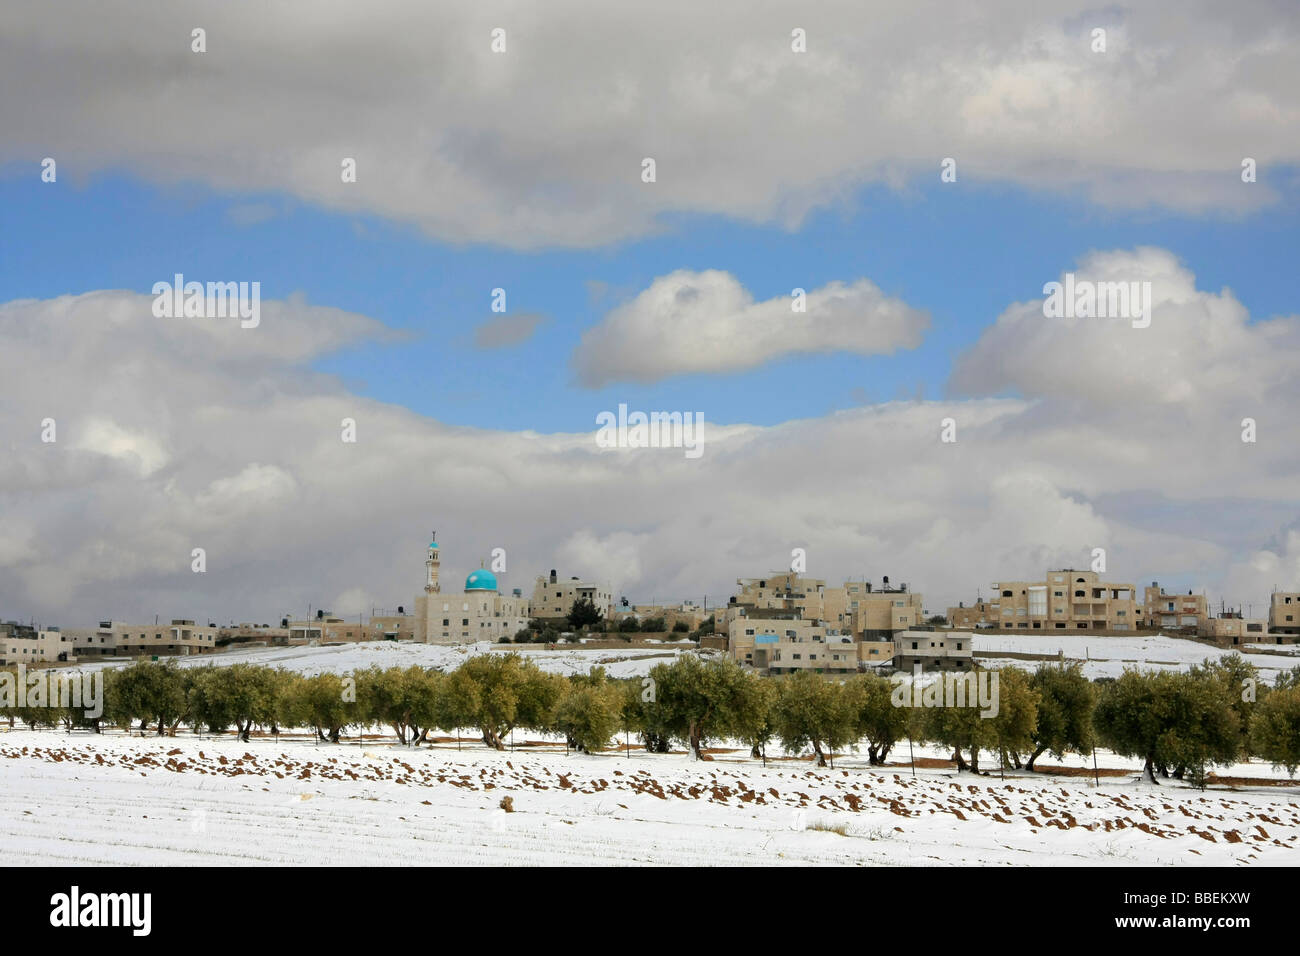 Judea a Palestinian village in the snow - Stock Image